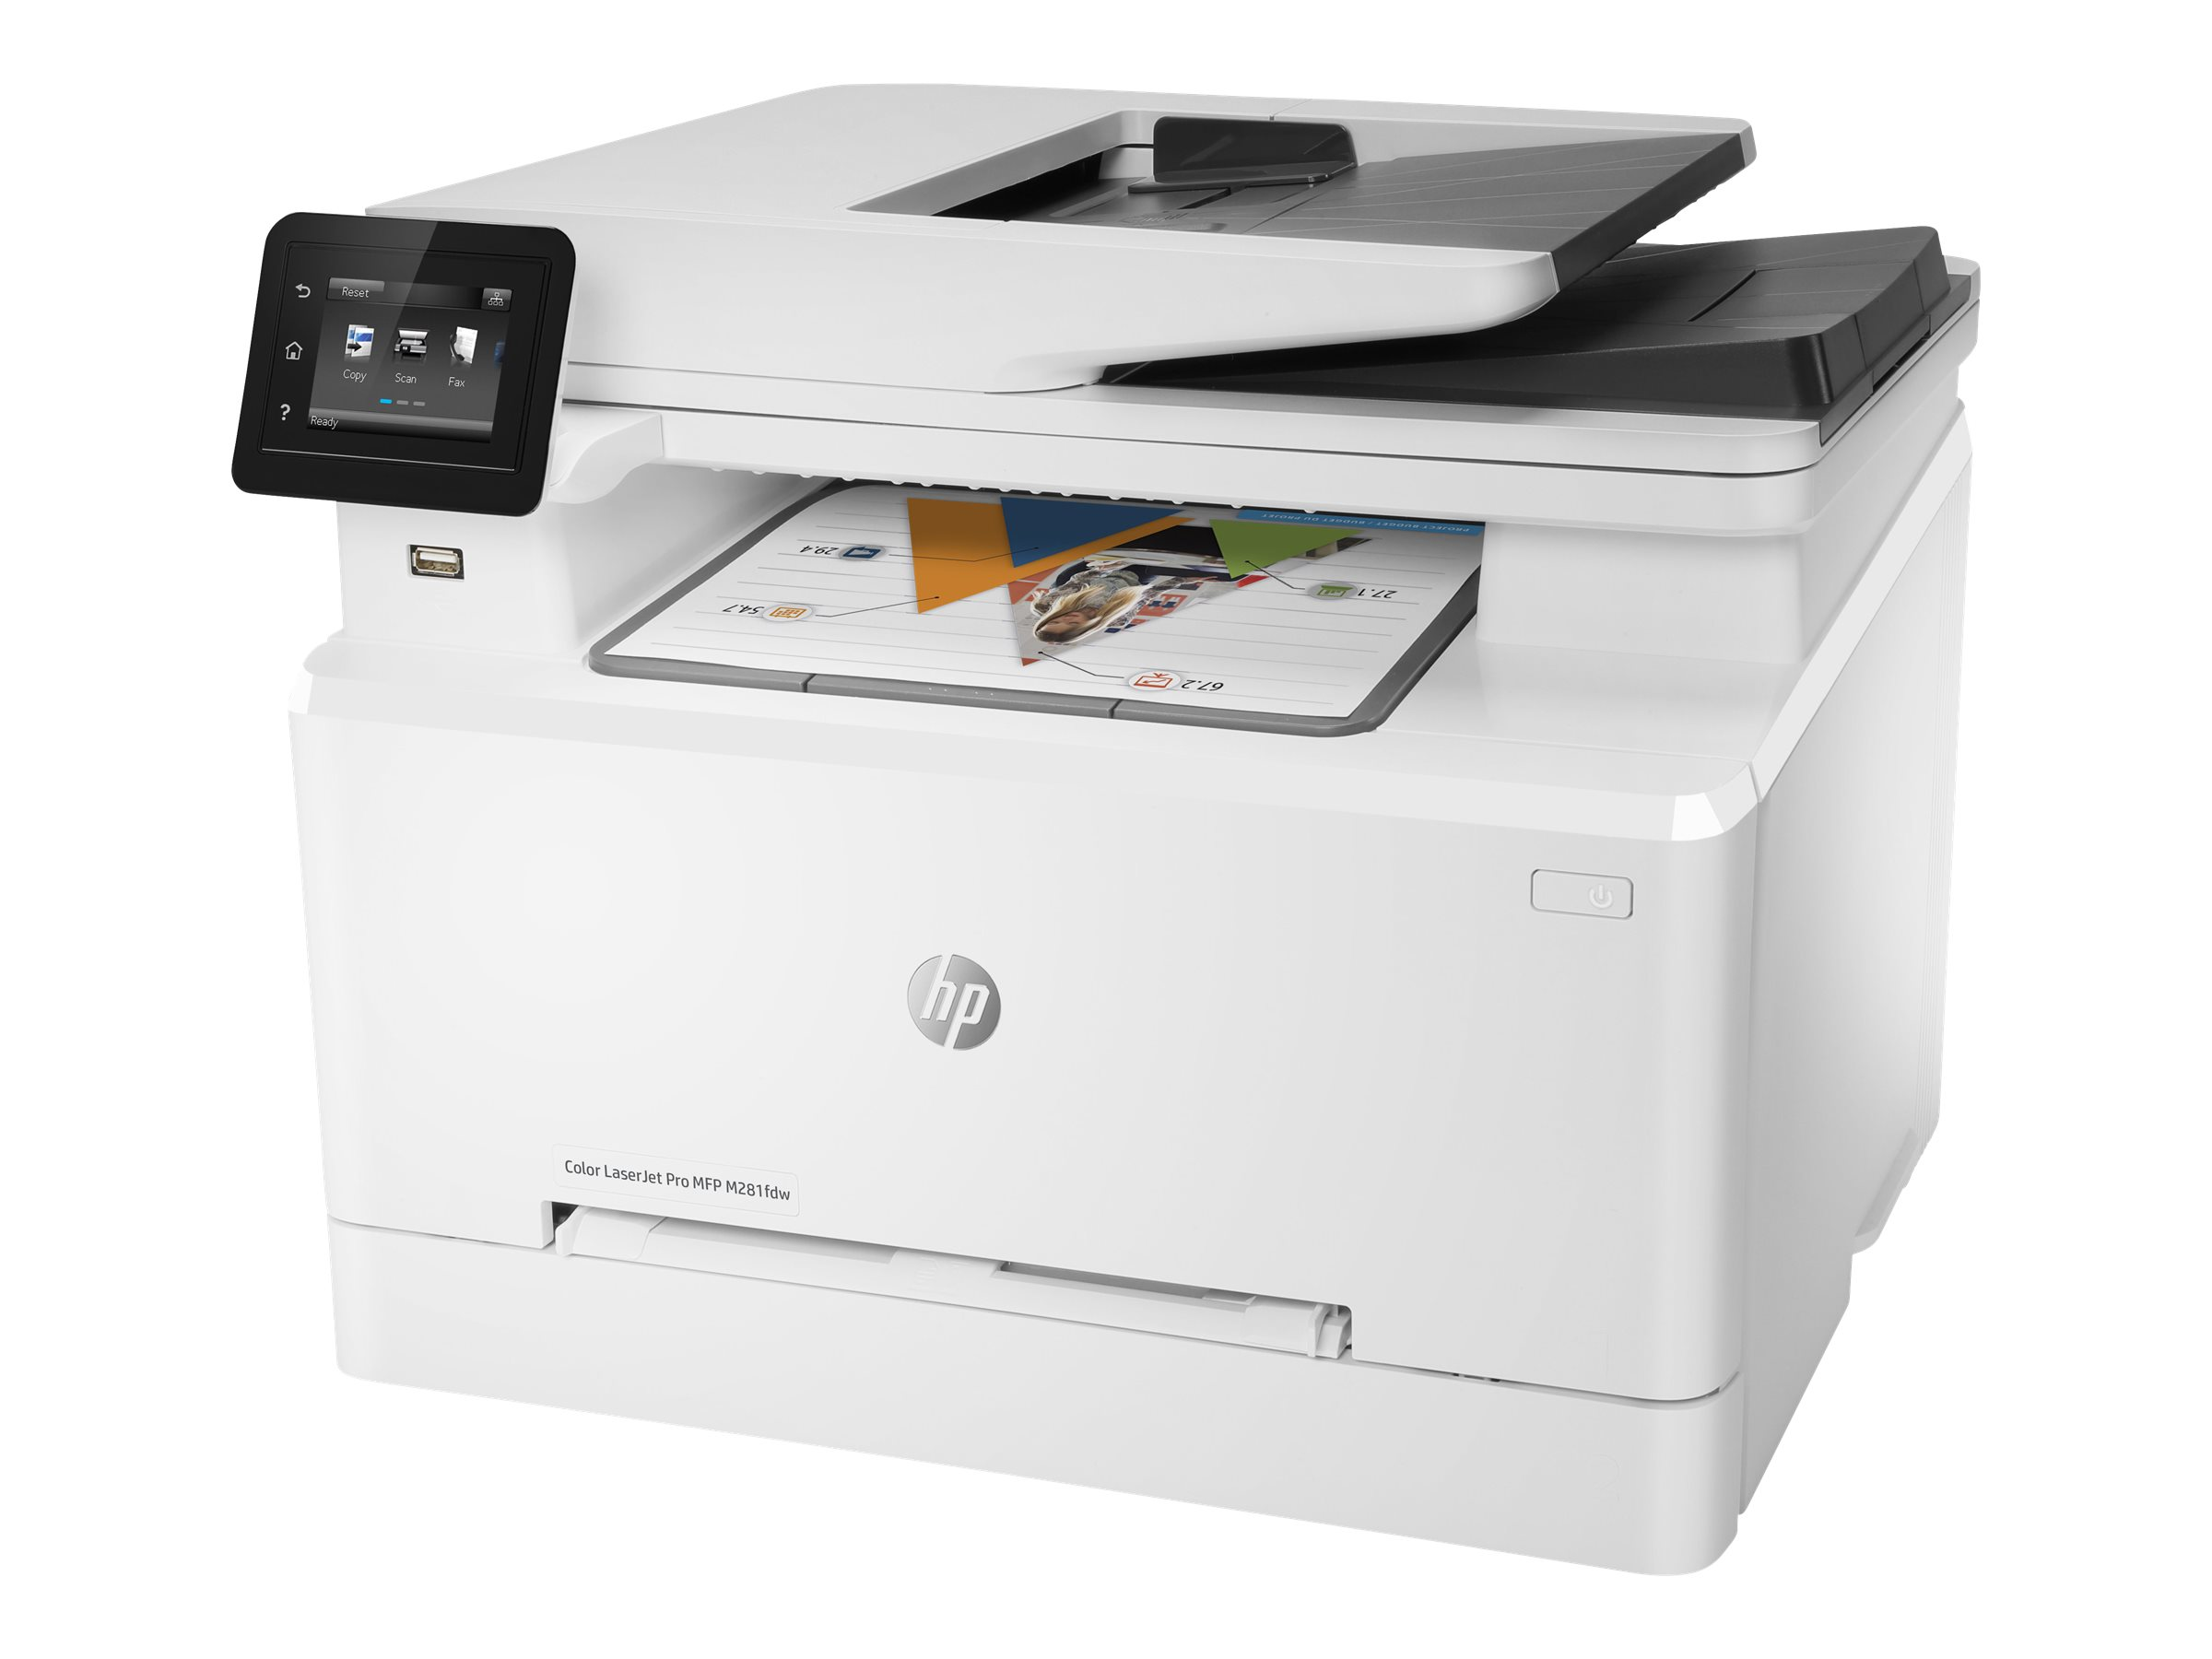 ea0172acd39 HP Color LaserJet Pro MFP M281fdw - imprimante multifonctions ...